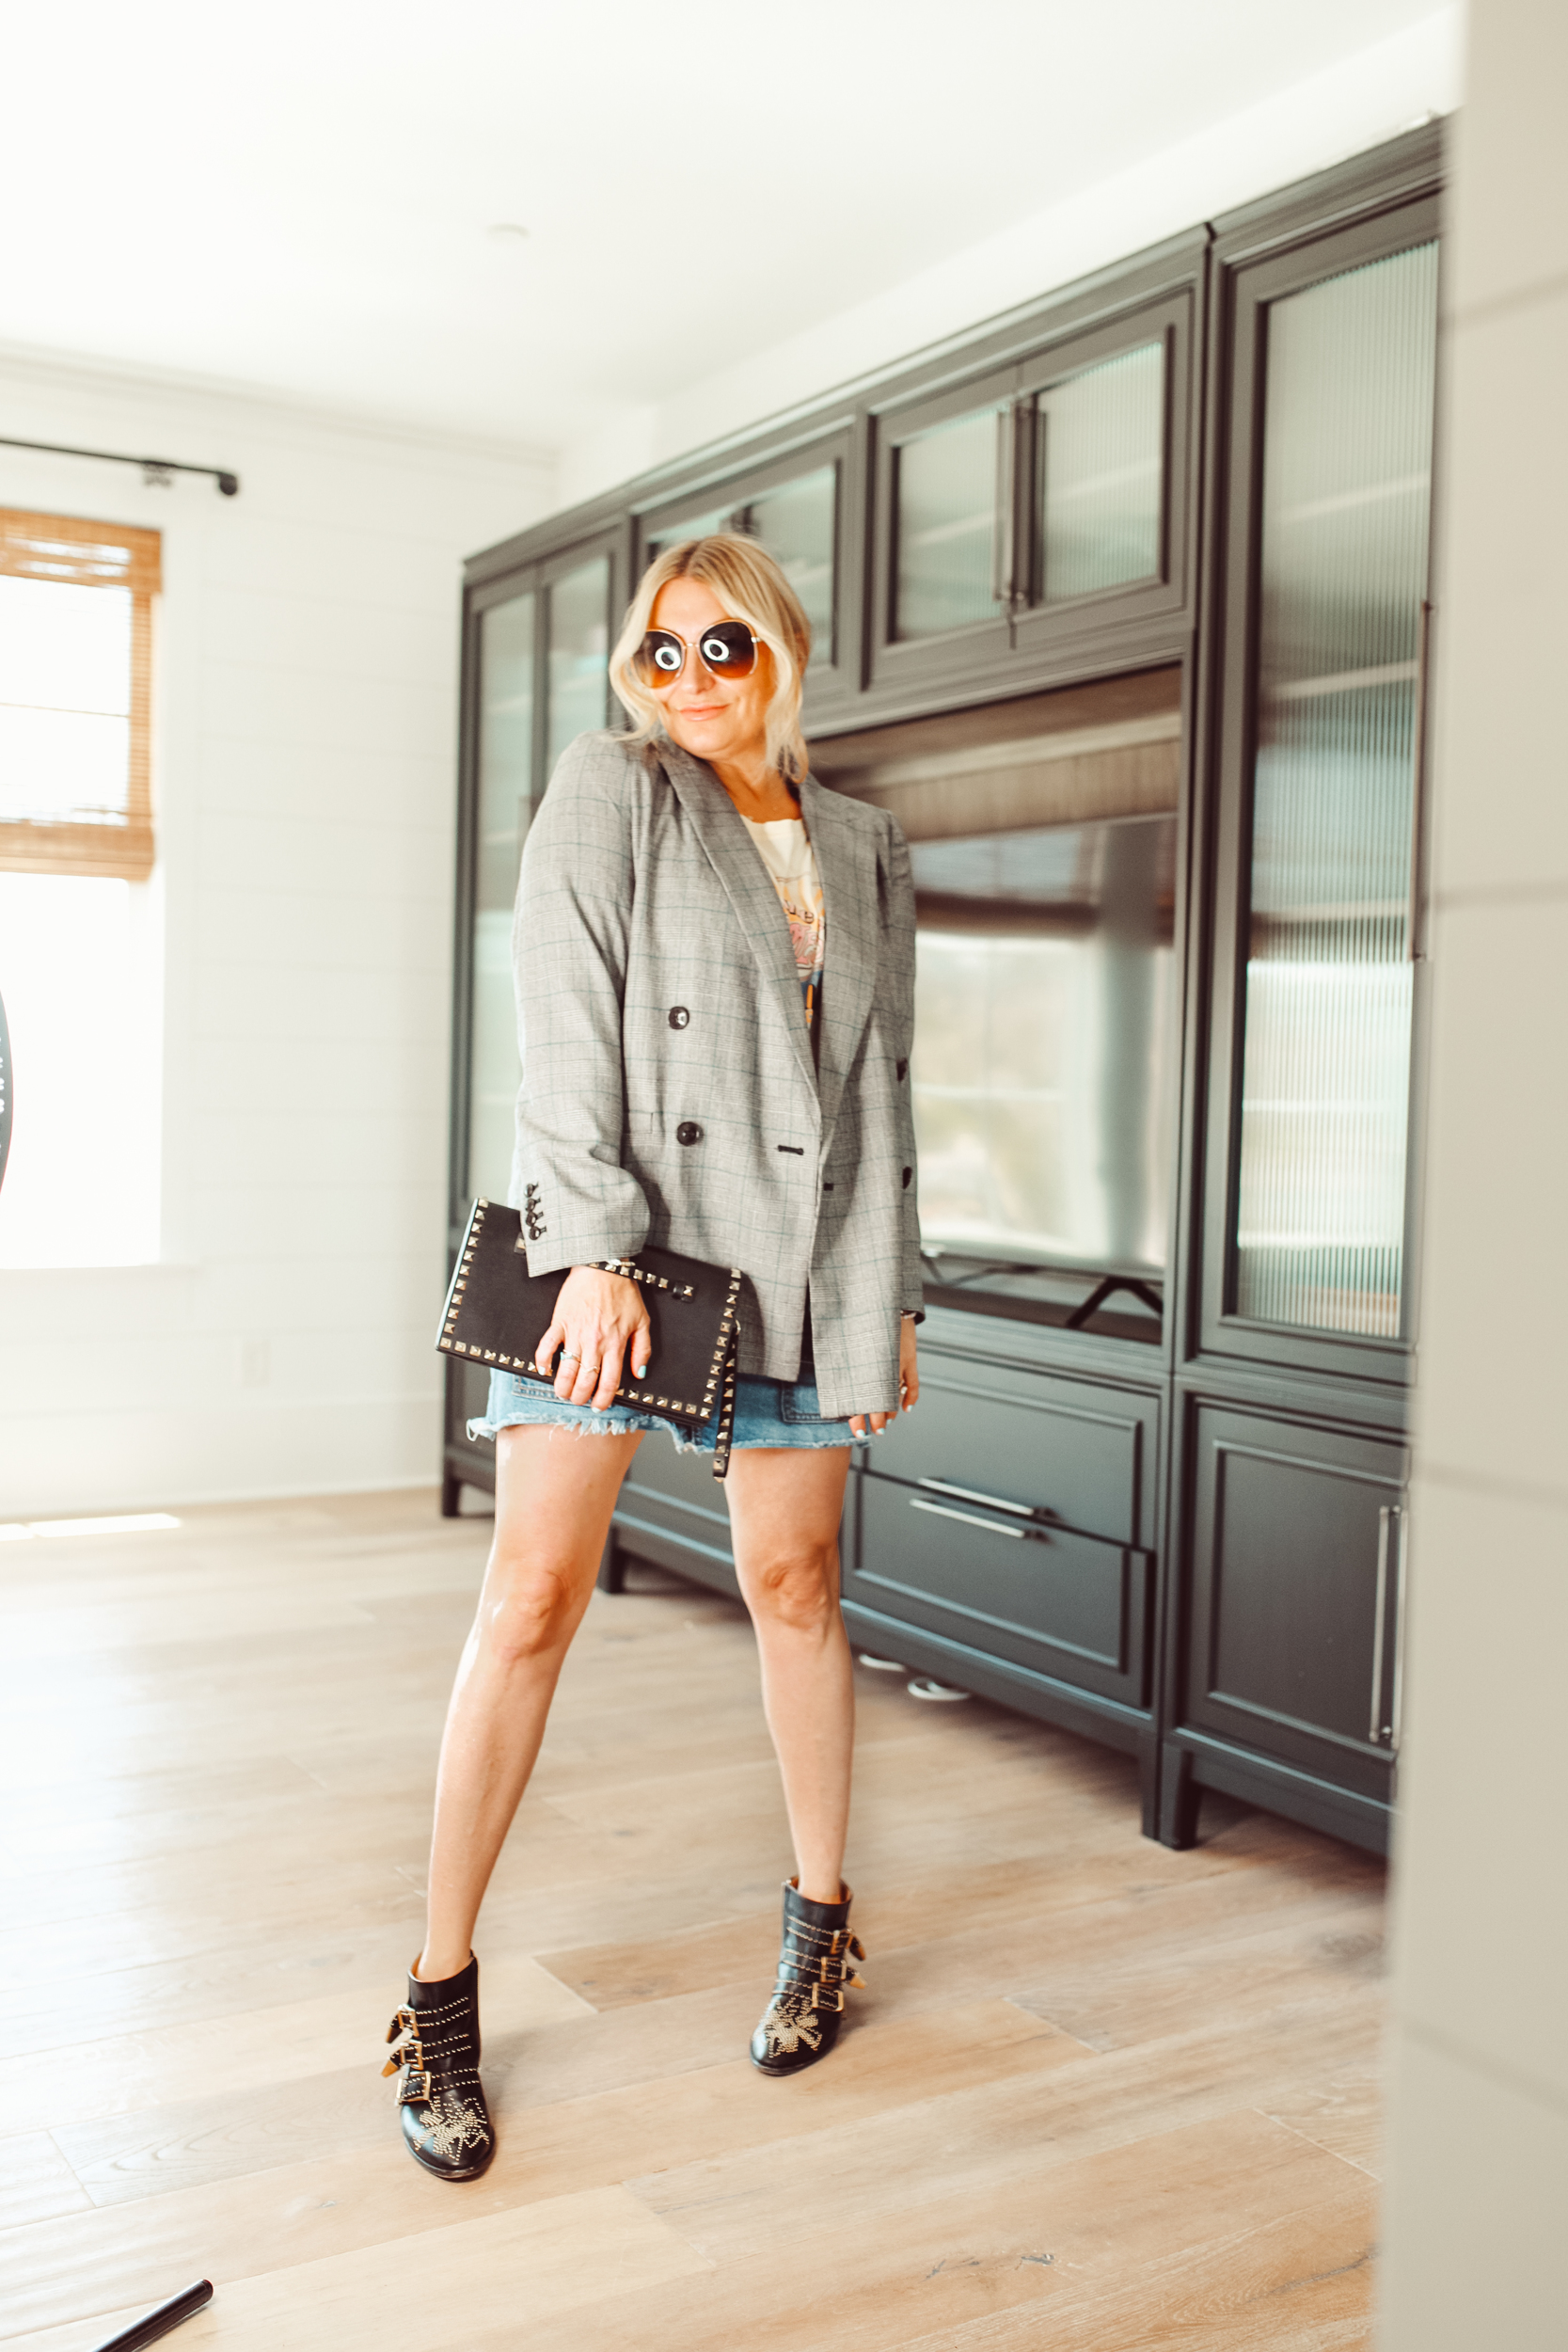 woman in cool outfit